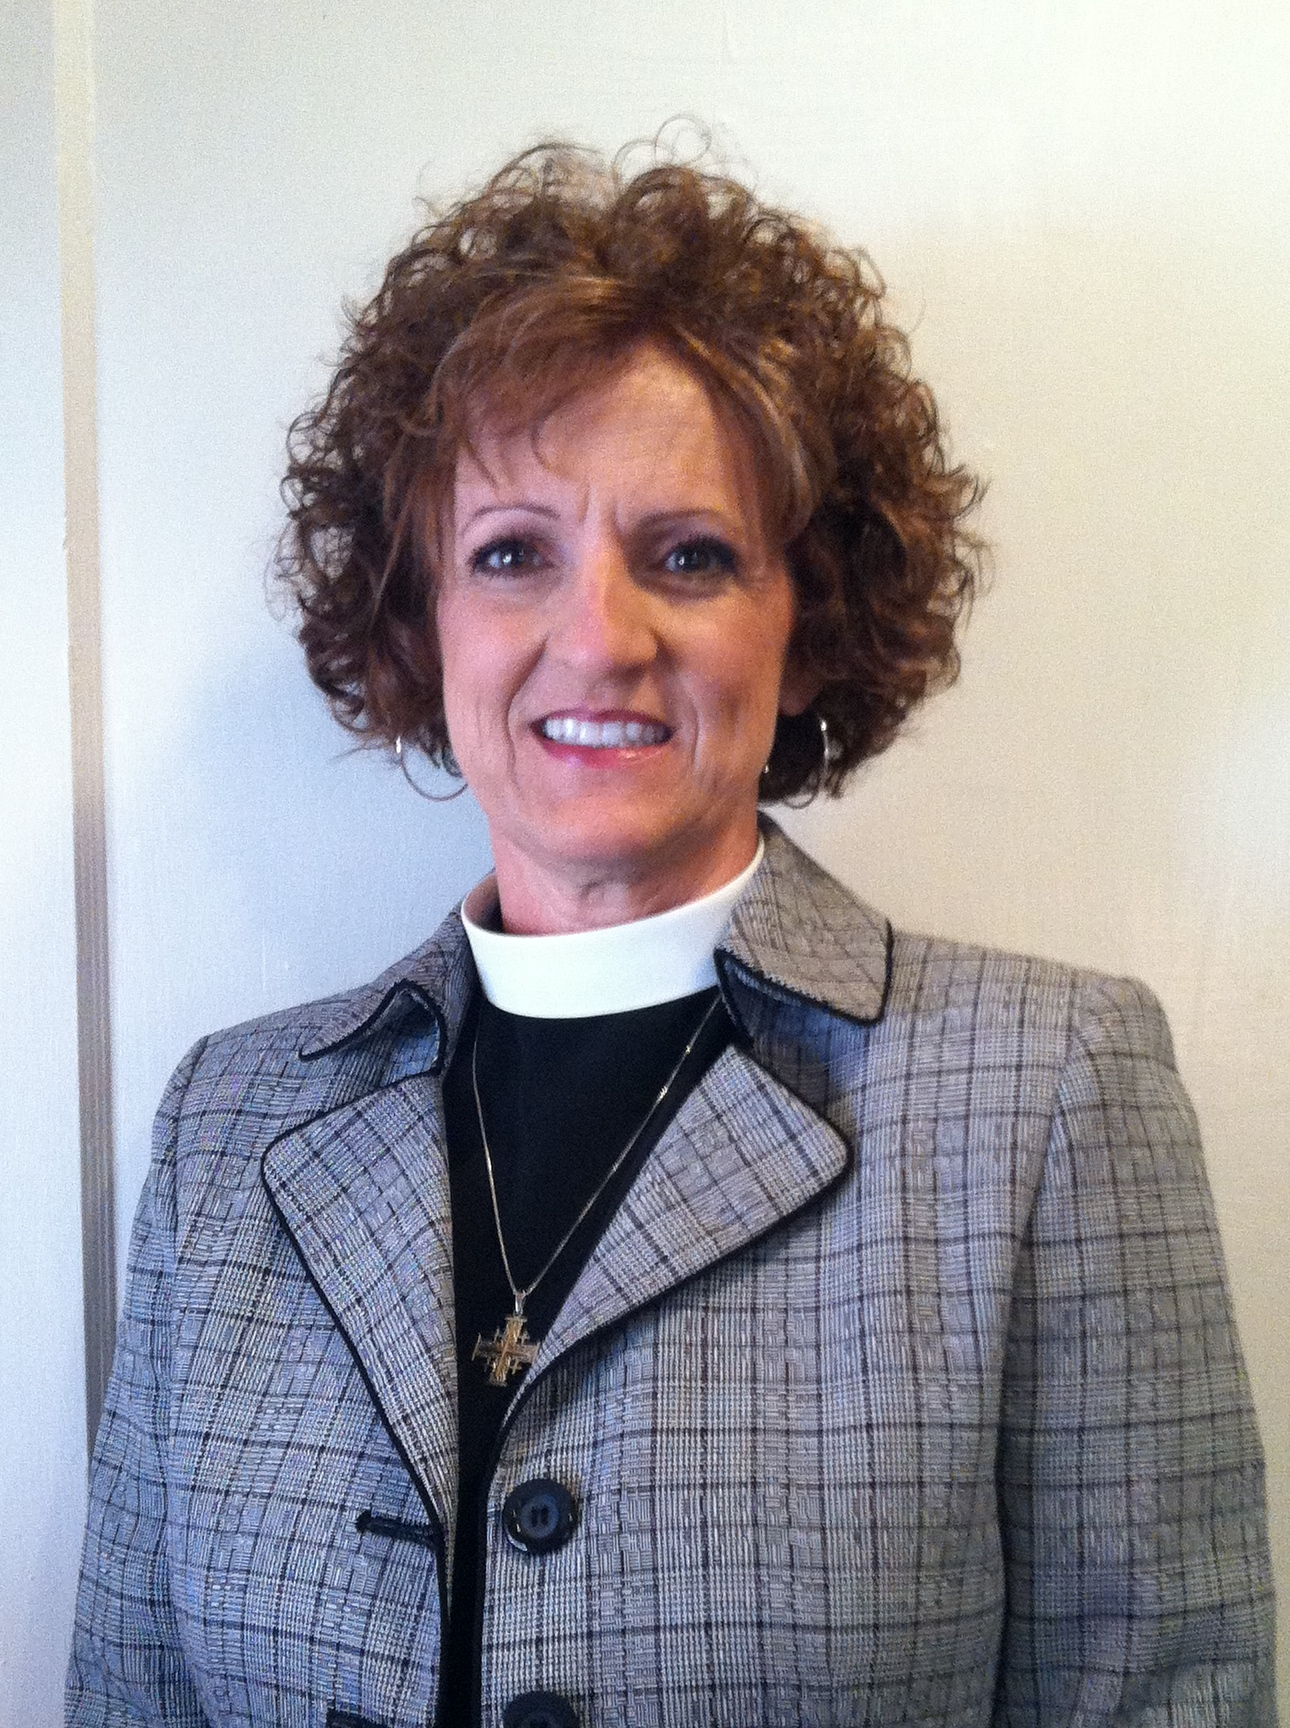 Openly partnered priest is new rector at FW Episcopal Church